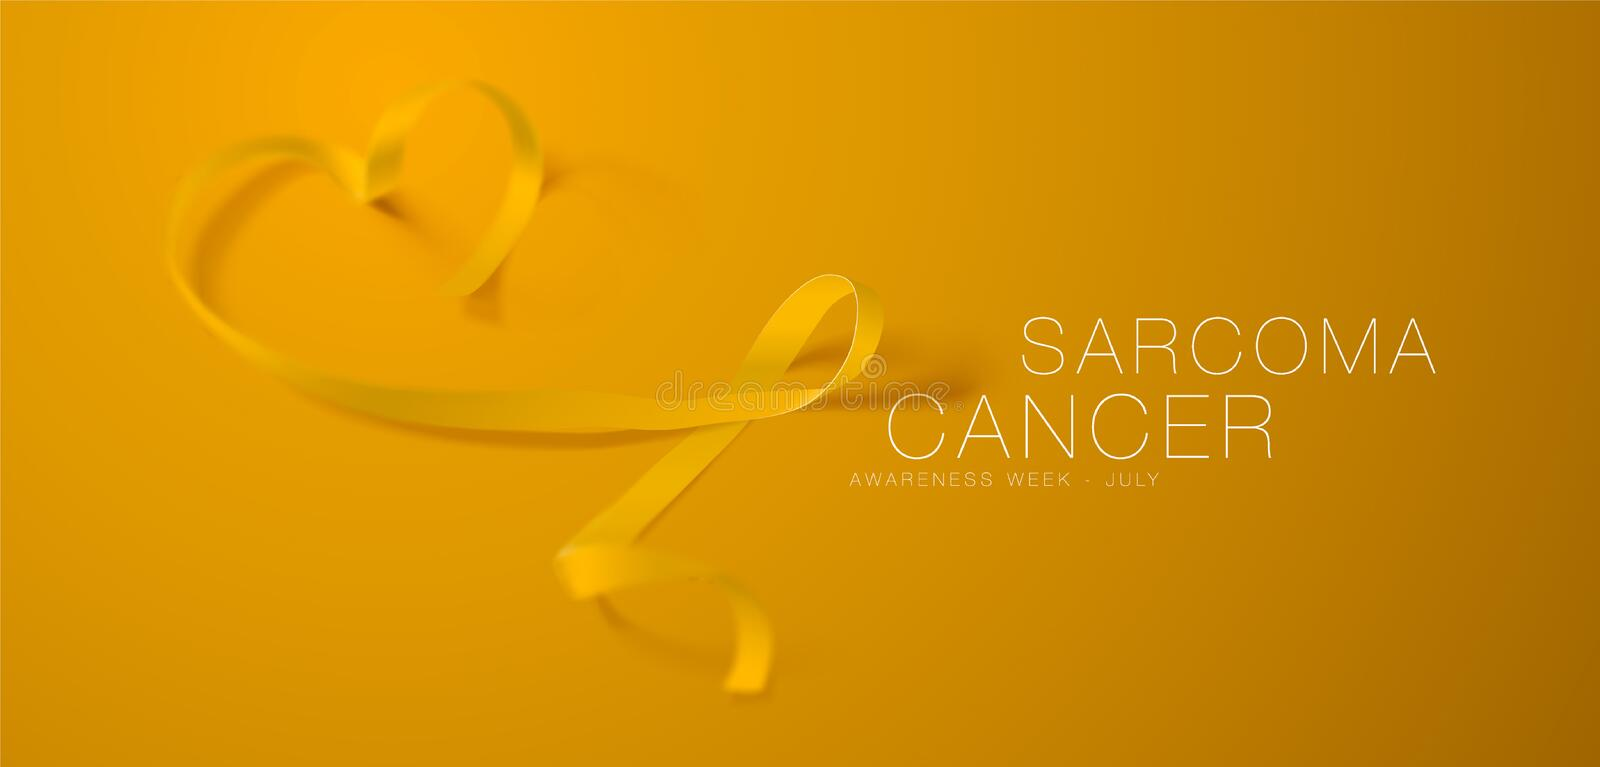 Sarcoma and Bone Cancer Awareness Calligraphy Poster Design. Realistic Yellow Ribbon. July is Cancer Awareness Month. Vector Illustration stock illustration